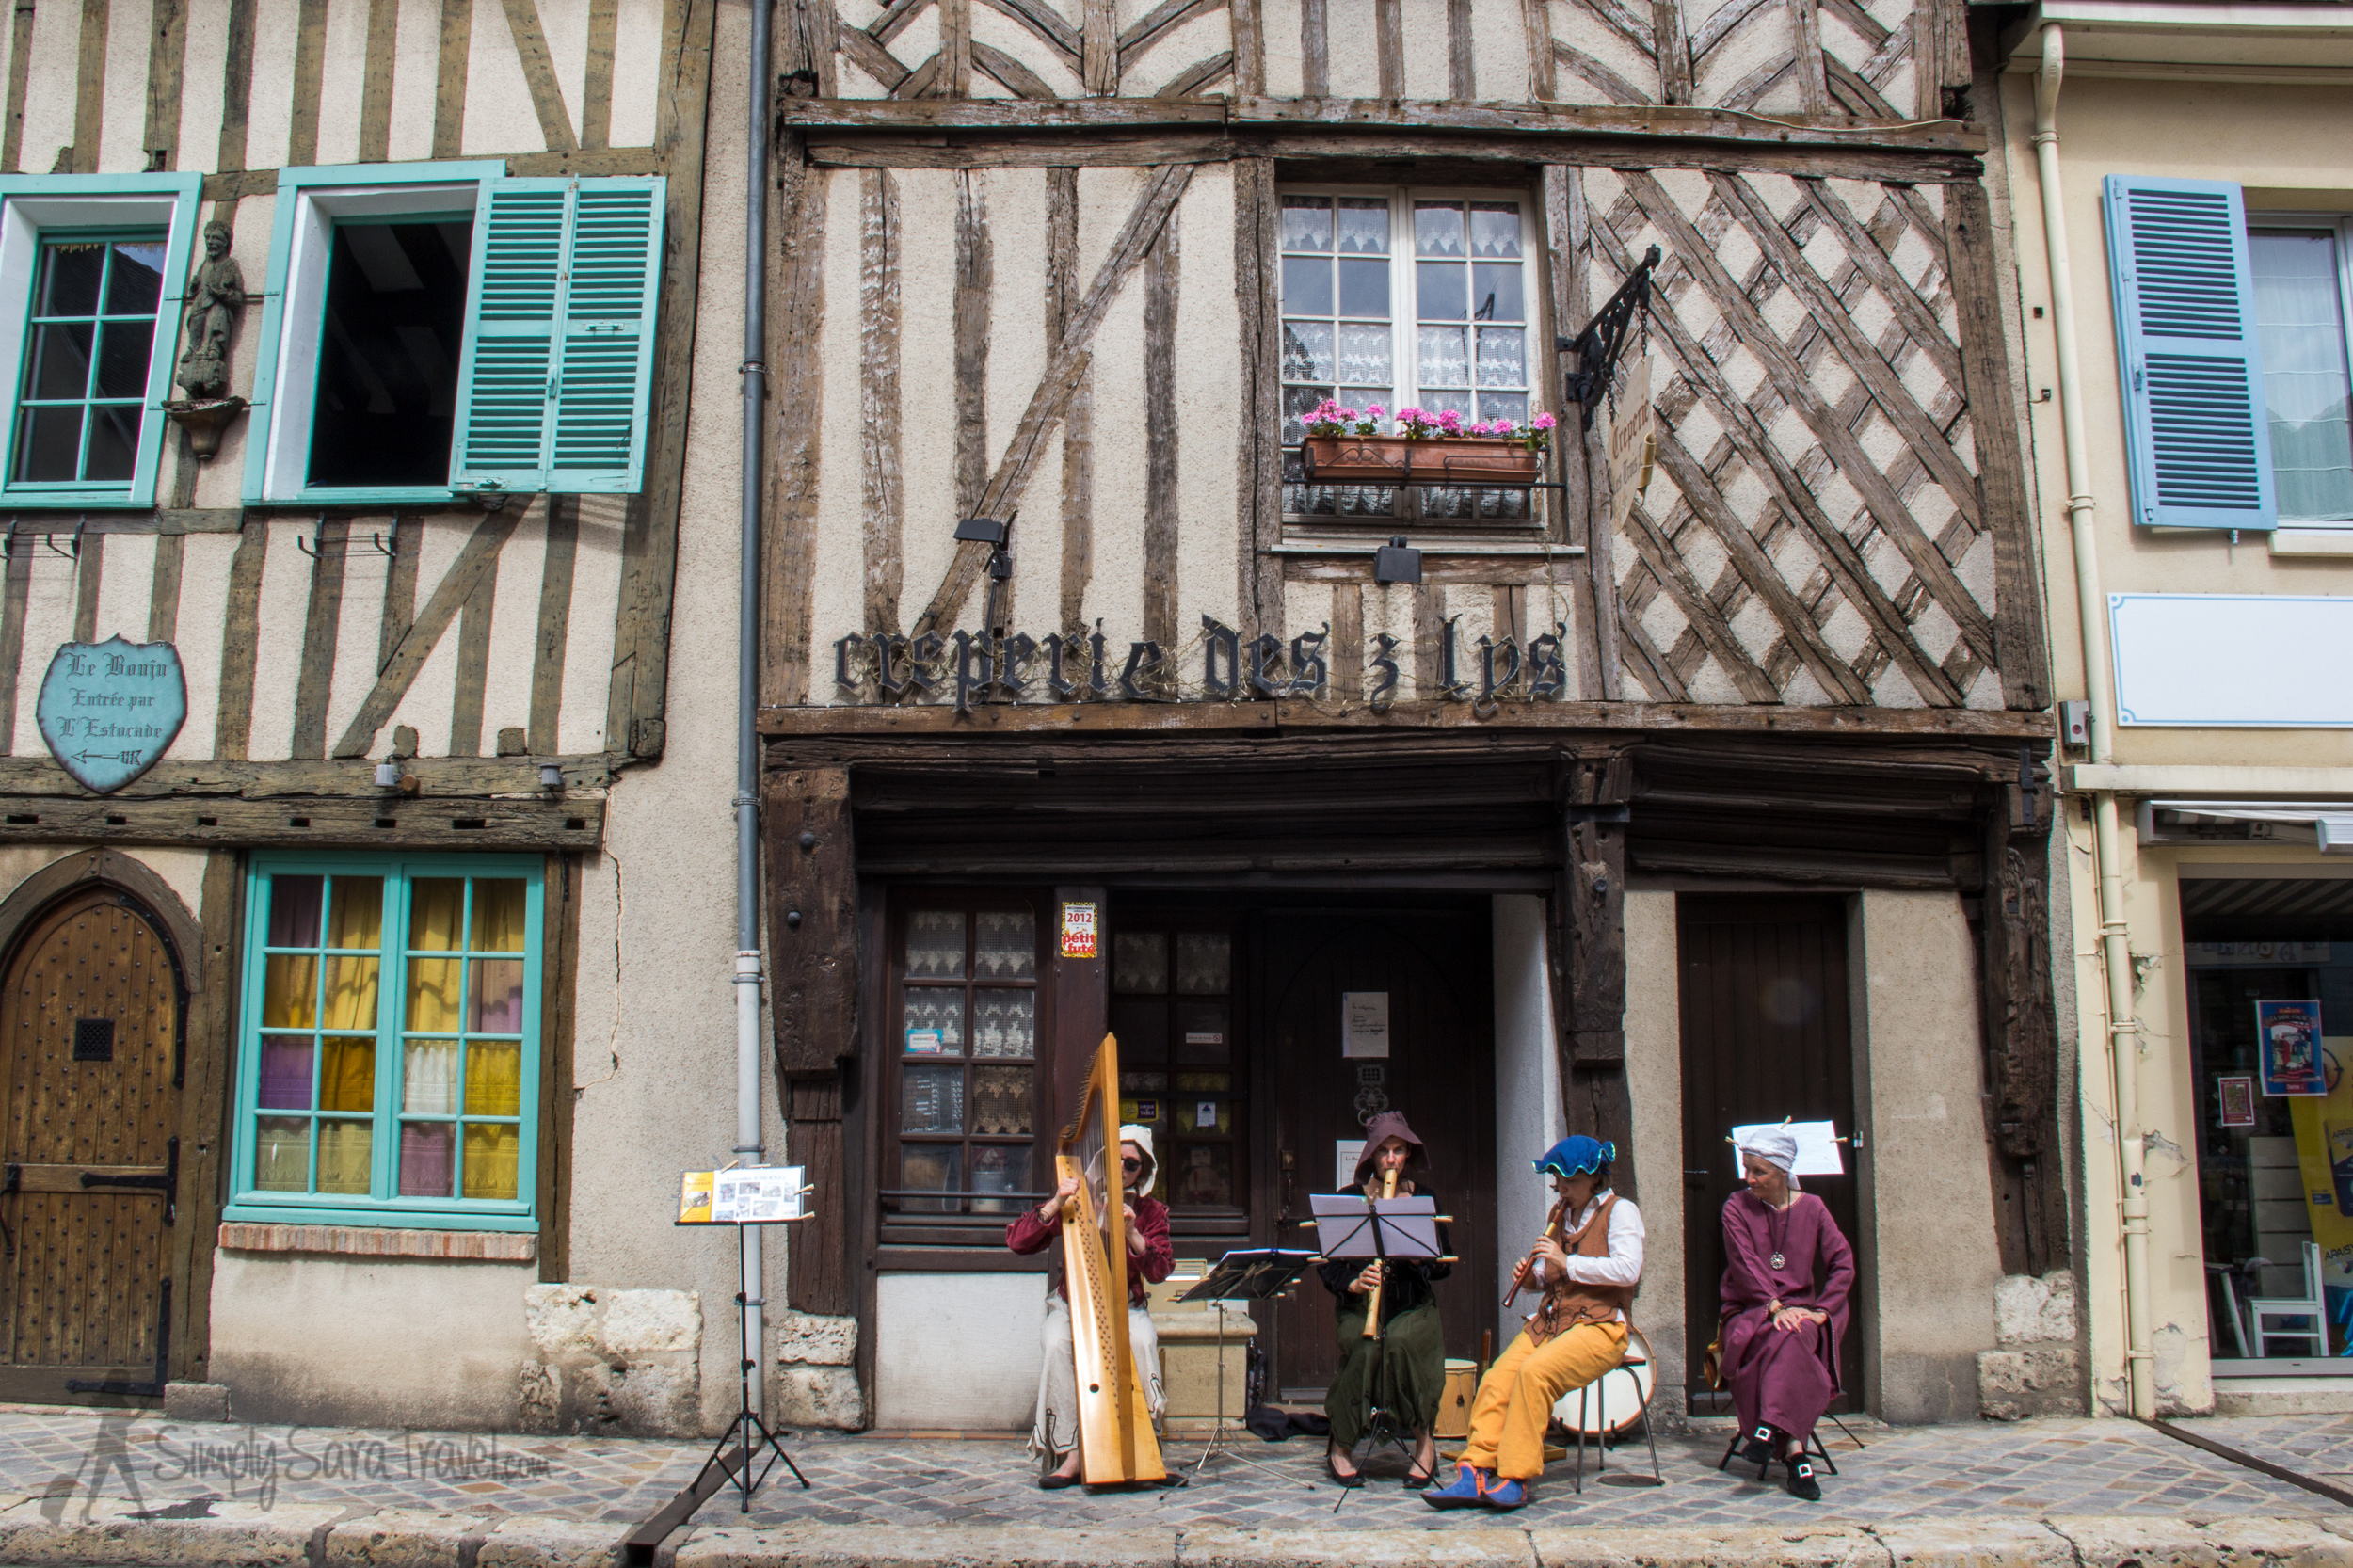 Medieval street musicians, Chartres, France